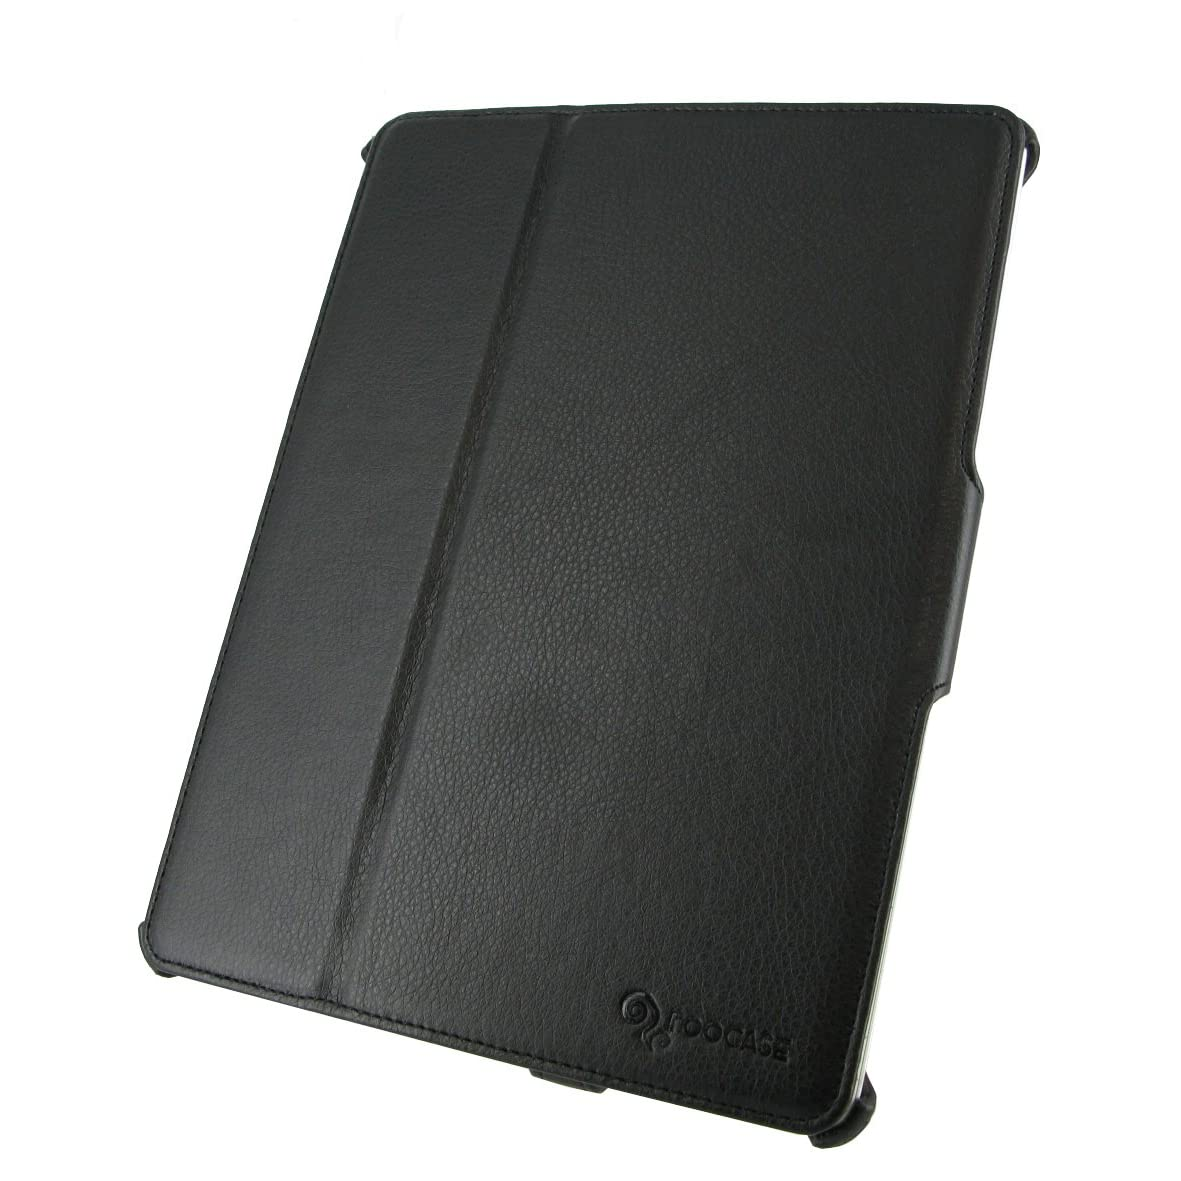 rooCASE Slim-Fit Folio Case for iPad 2 - Black